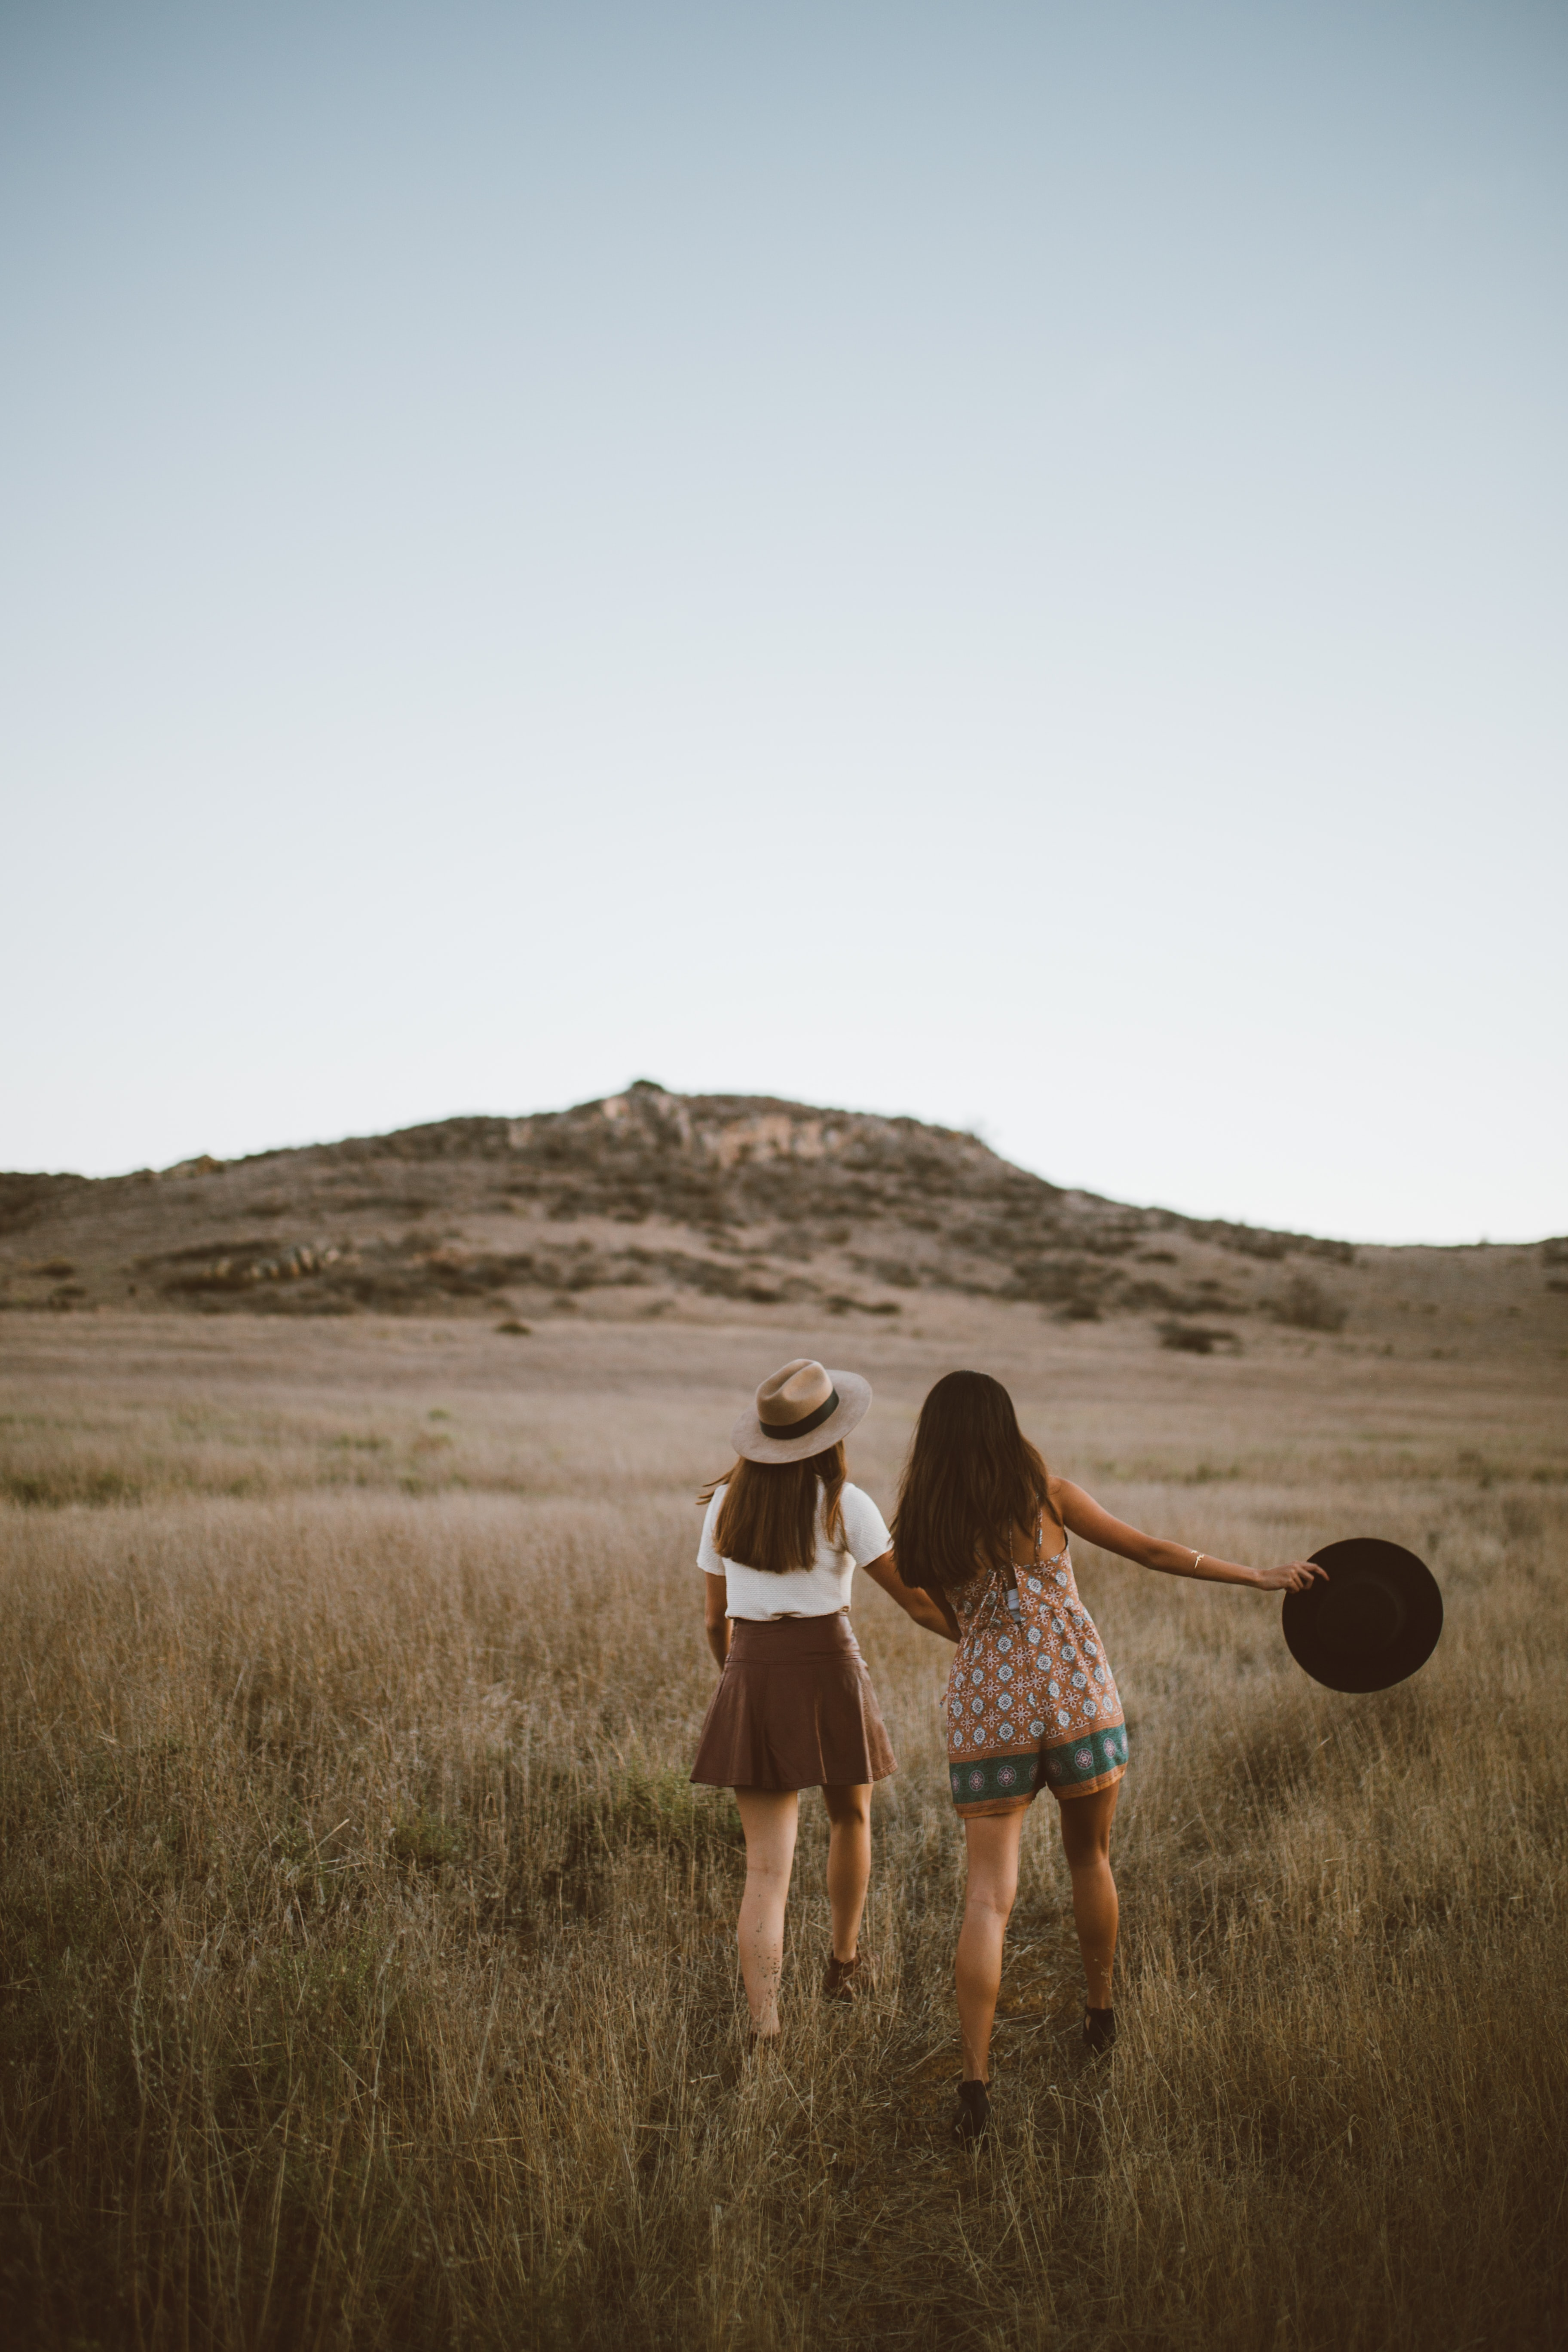 Two young woman explore the great outdoors together